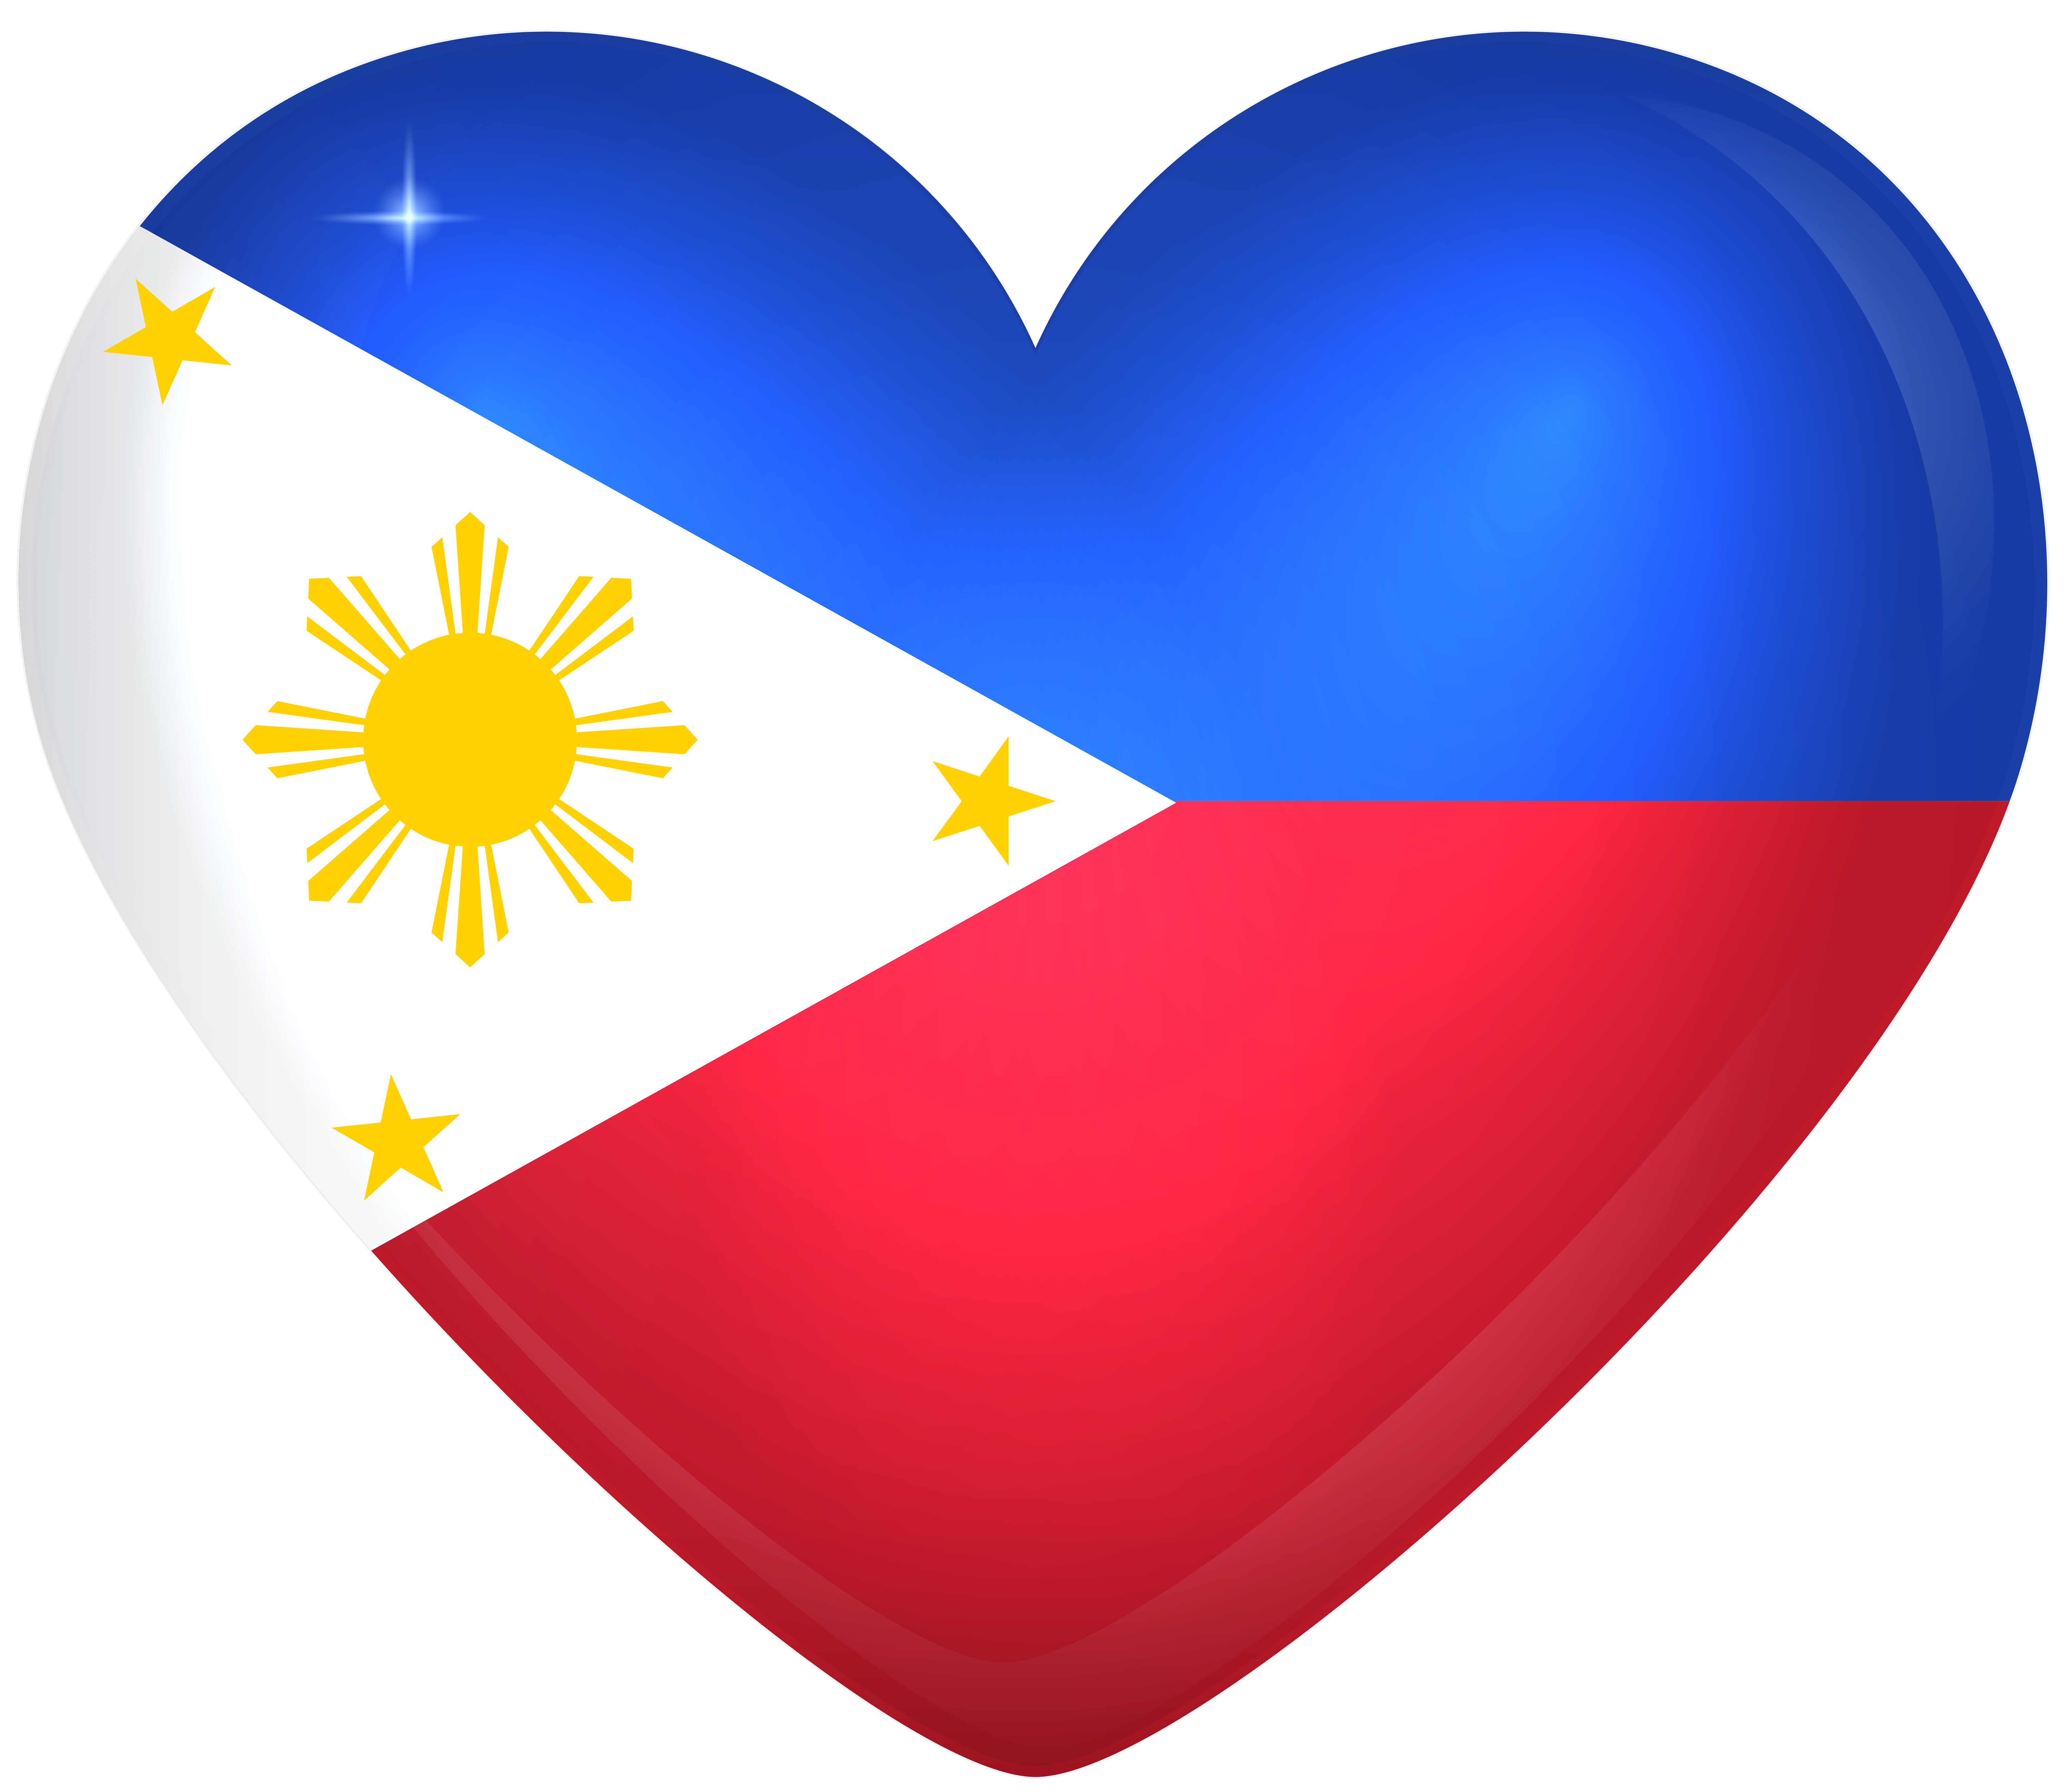 Hearts clipart flag. Philippines large heart gallery